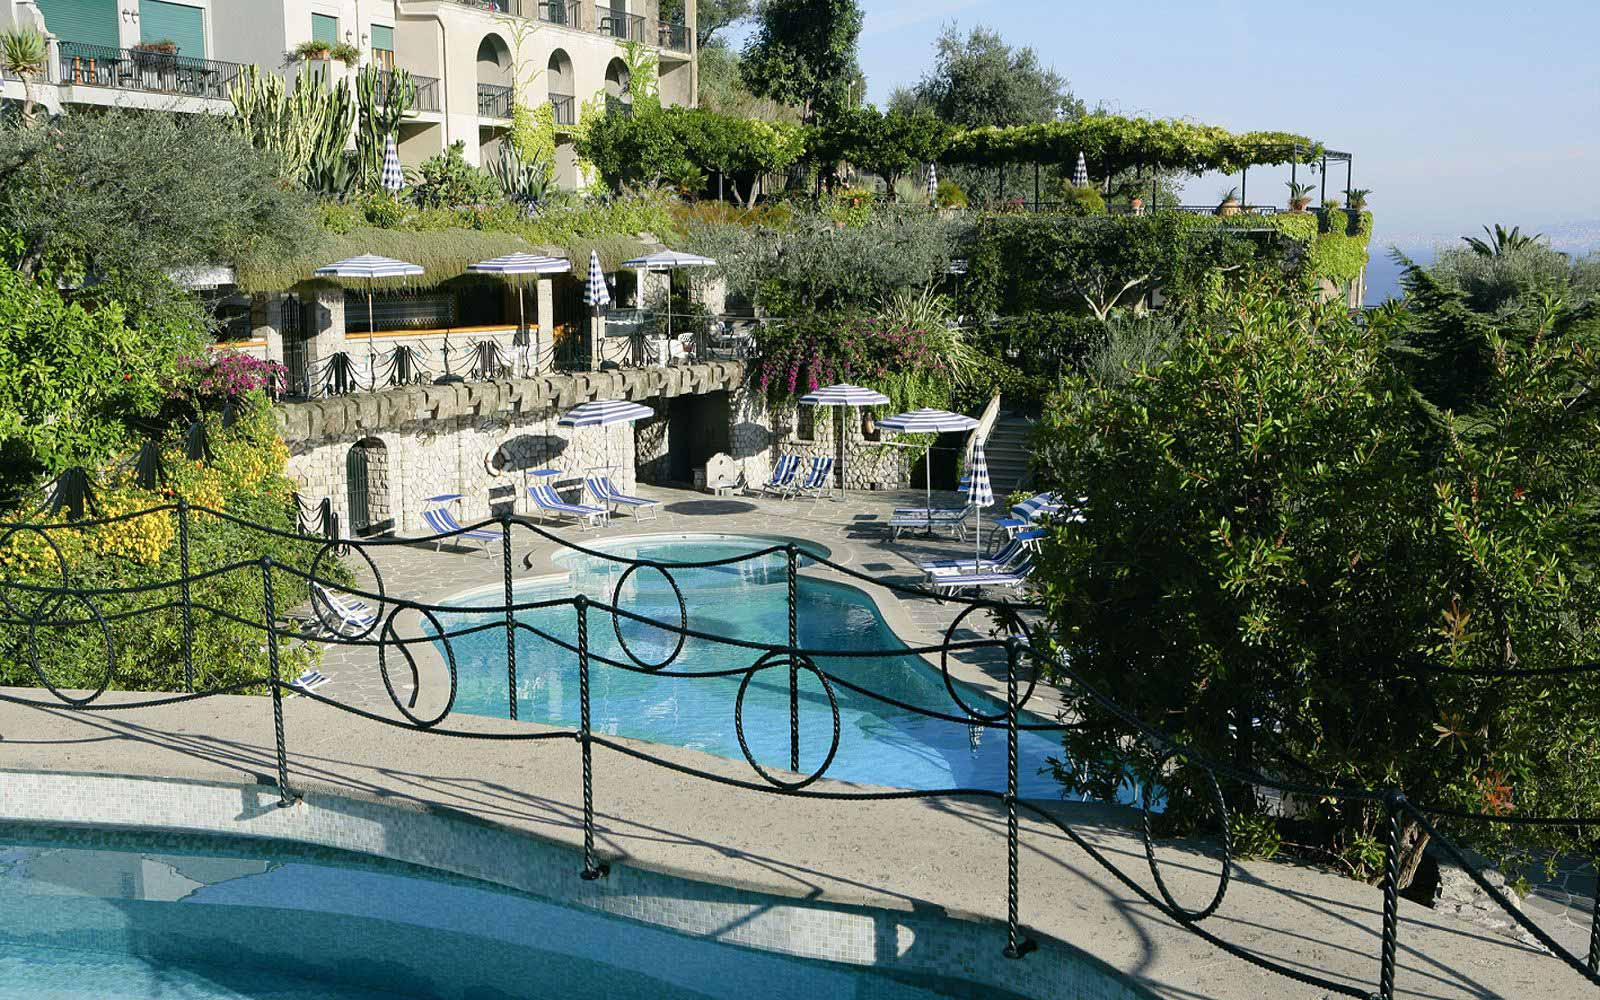 Pool Bar at the Grand Hotel Capodimonte